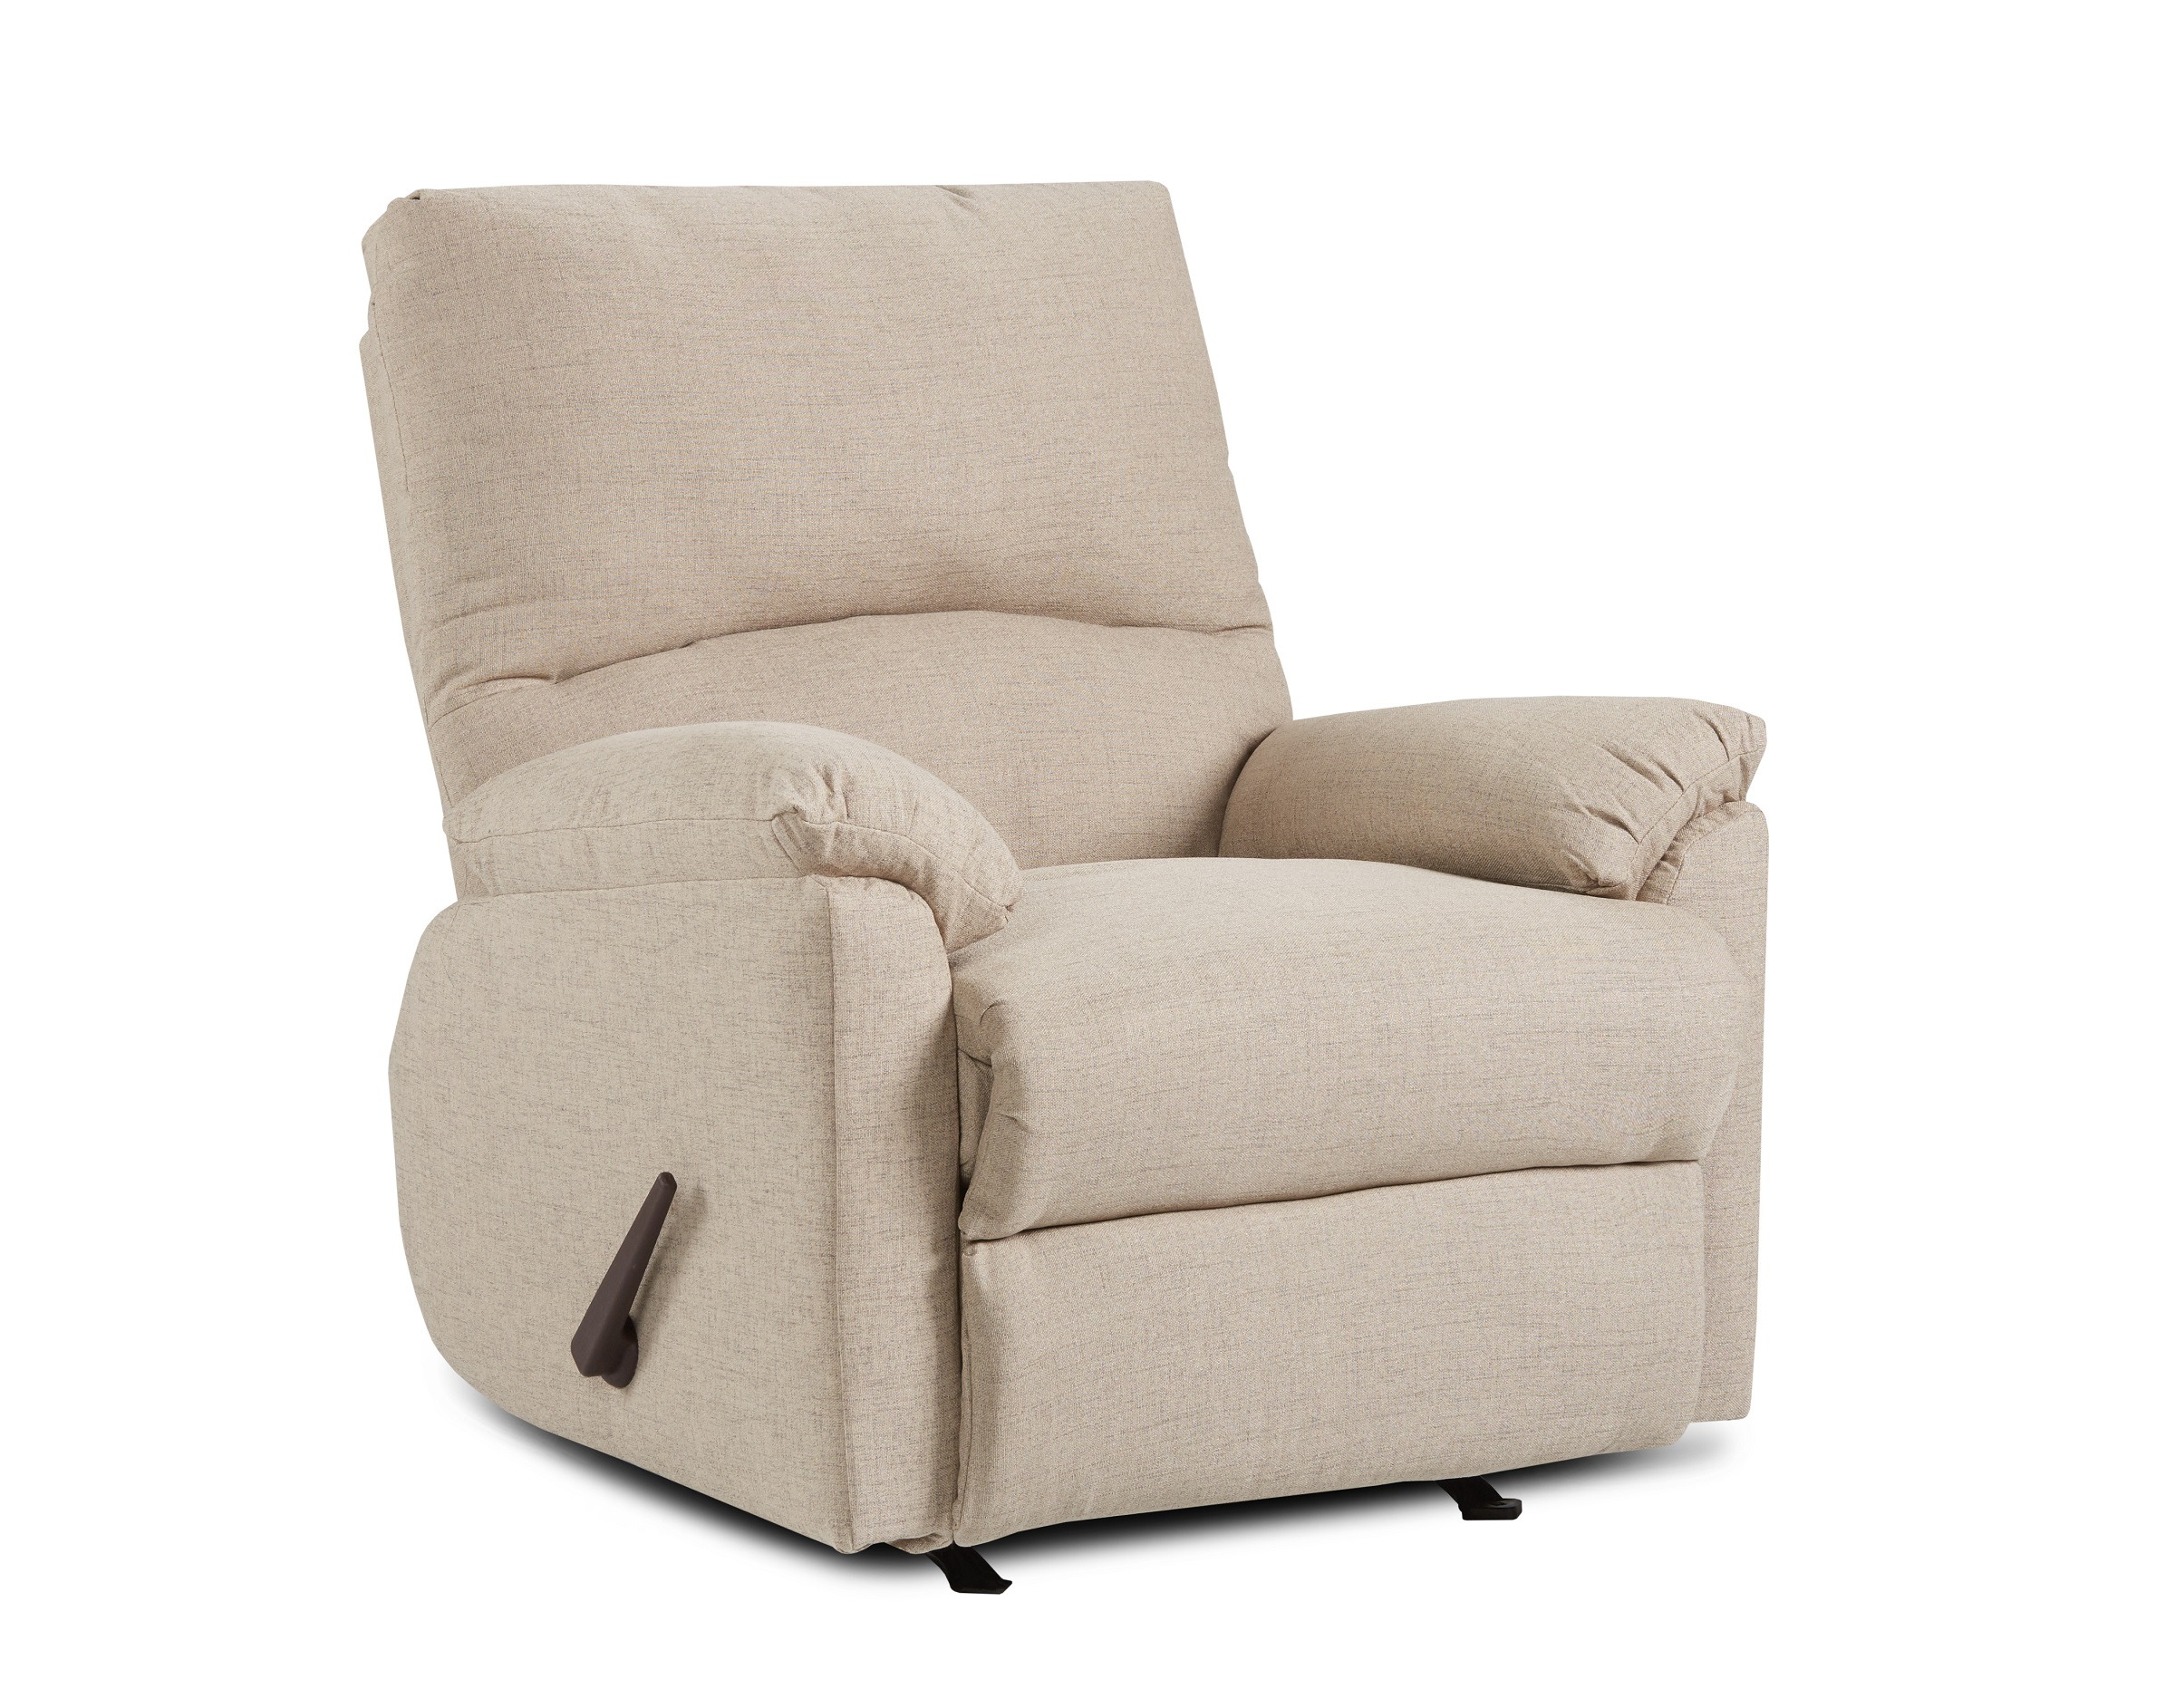 Cider Rocker Recliner